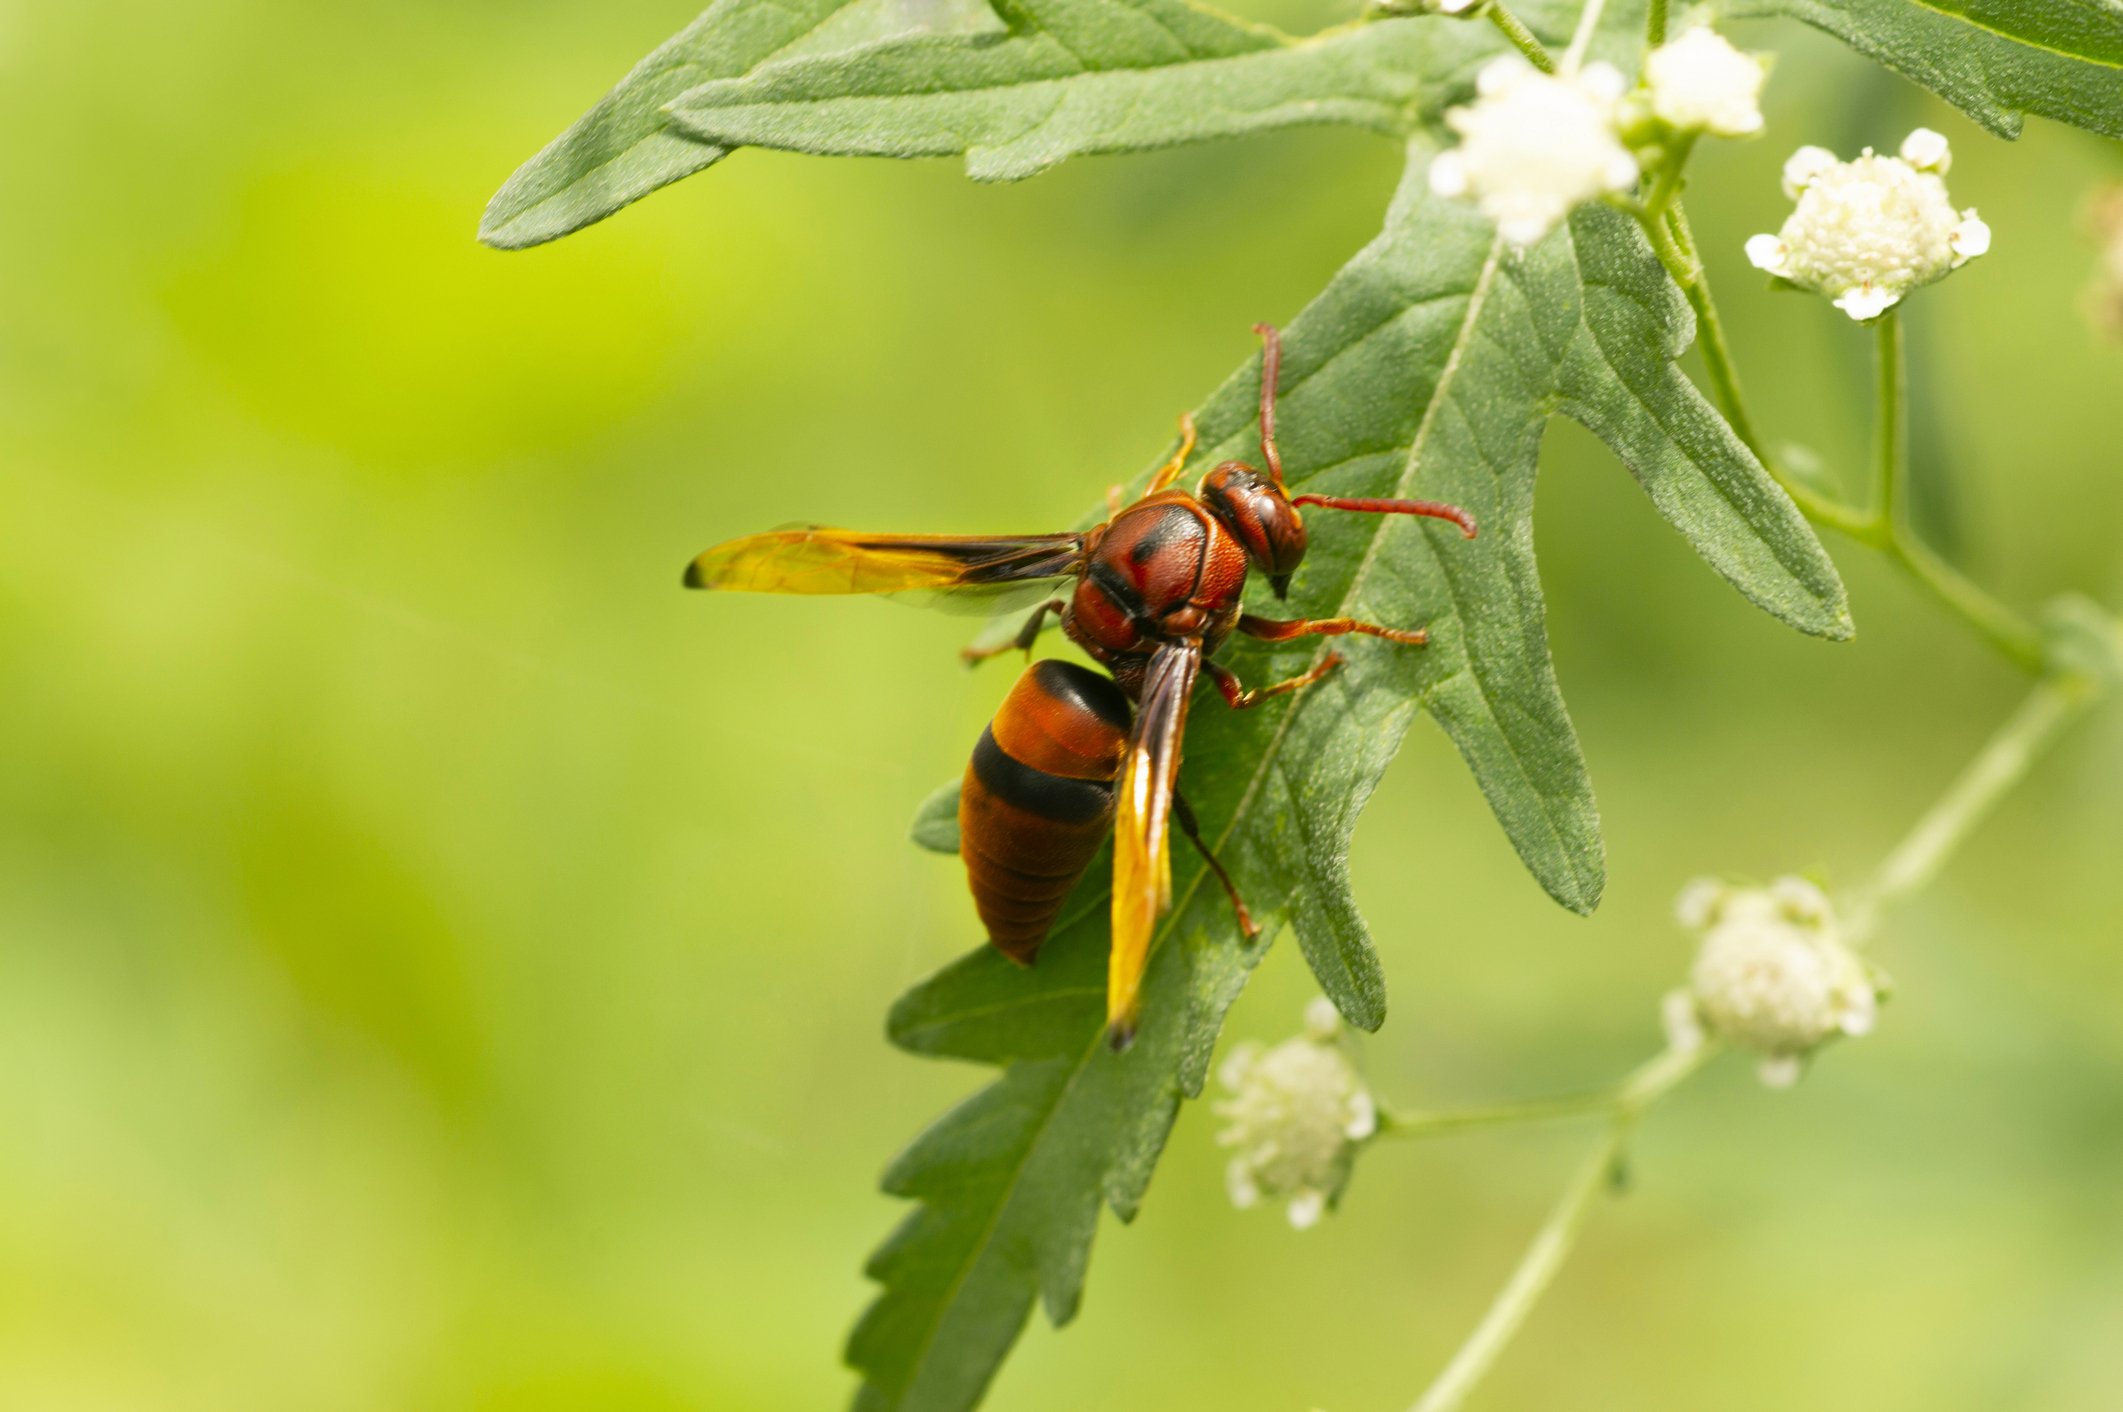 Paper Wasp Image 02